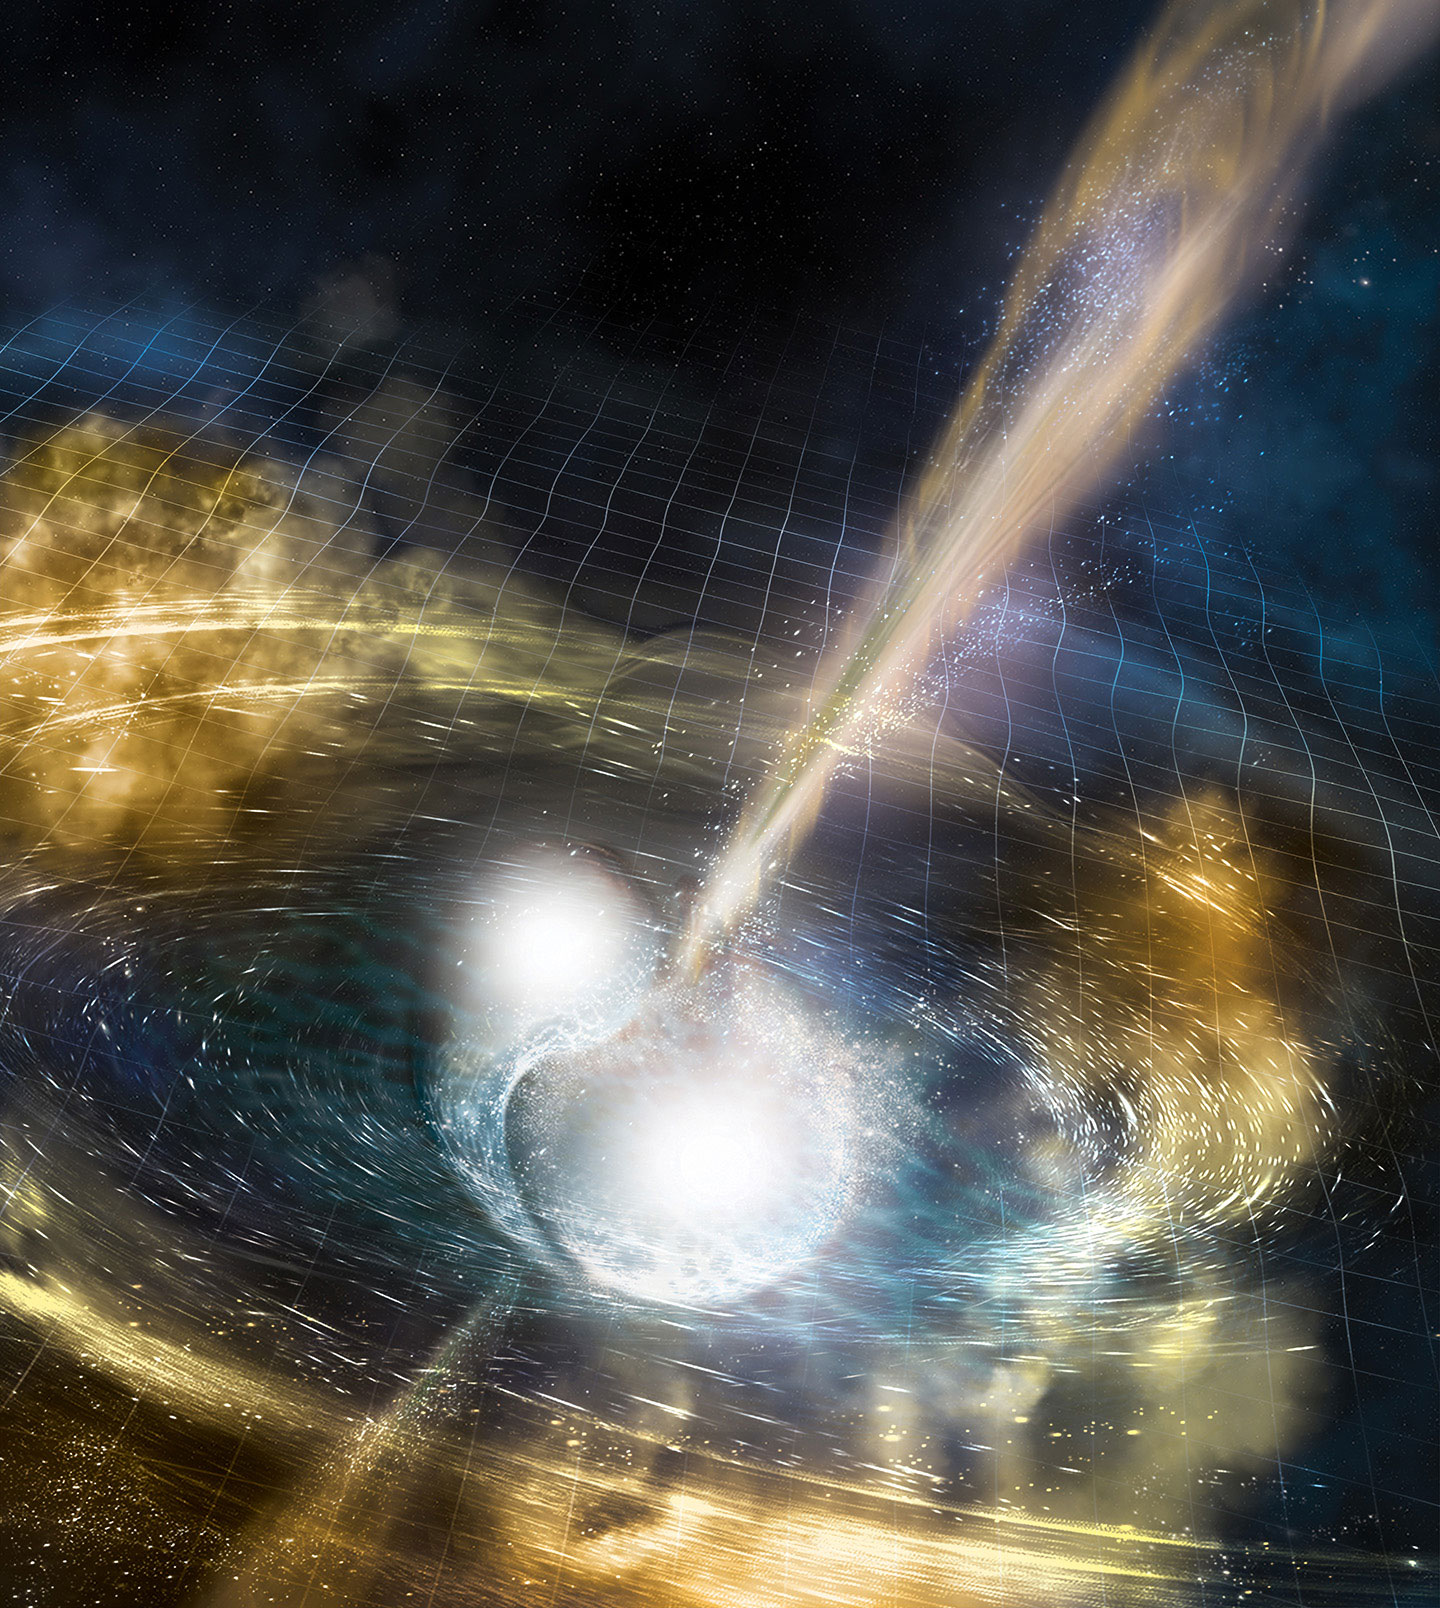 measuring the age of the universe with gravitational waves